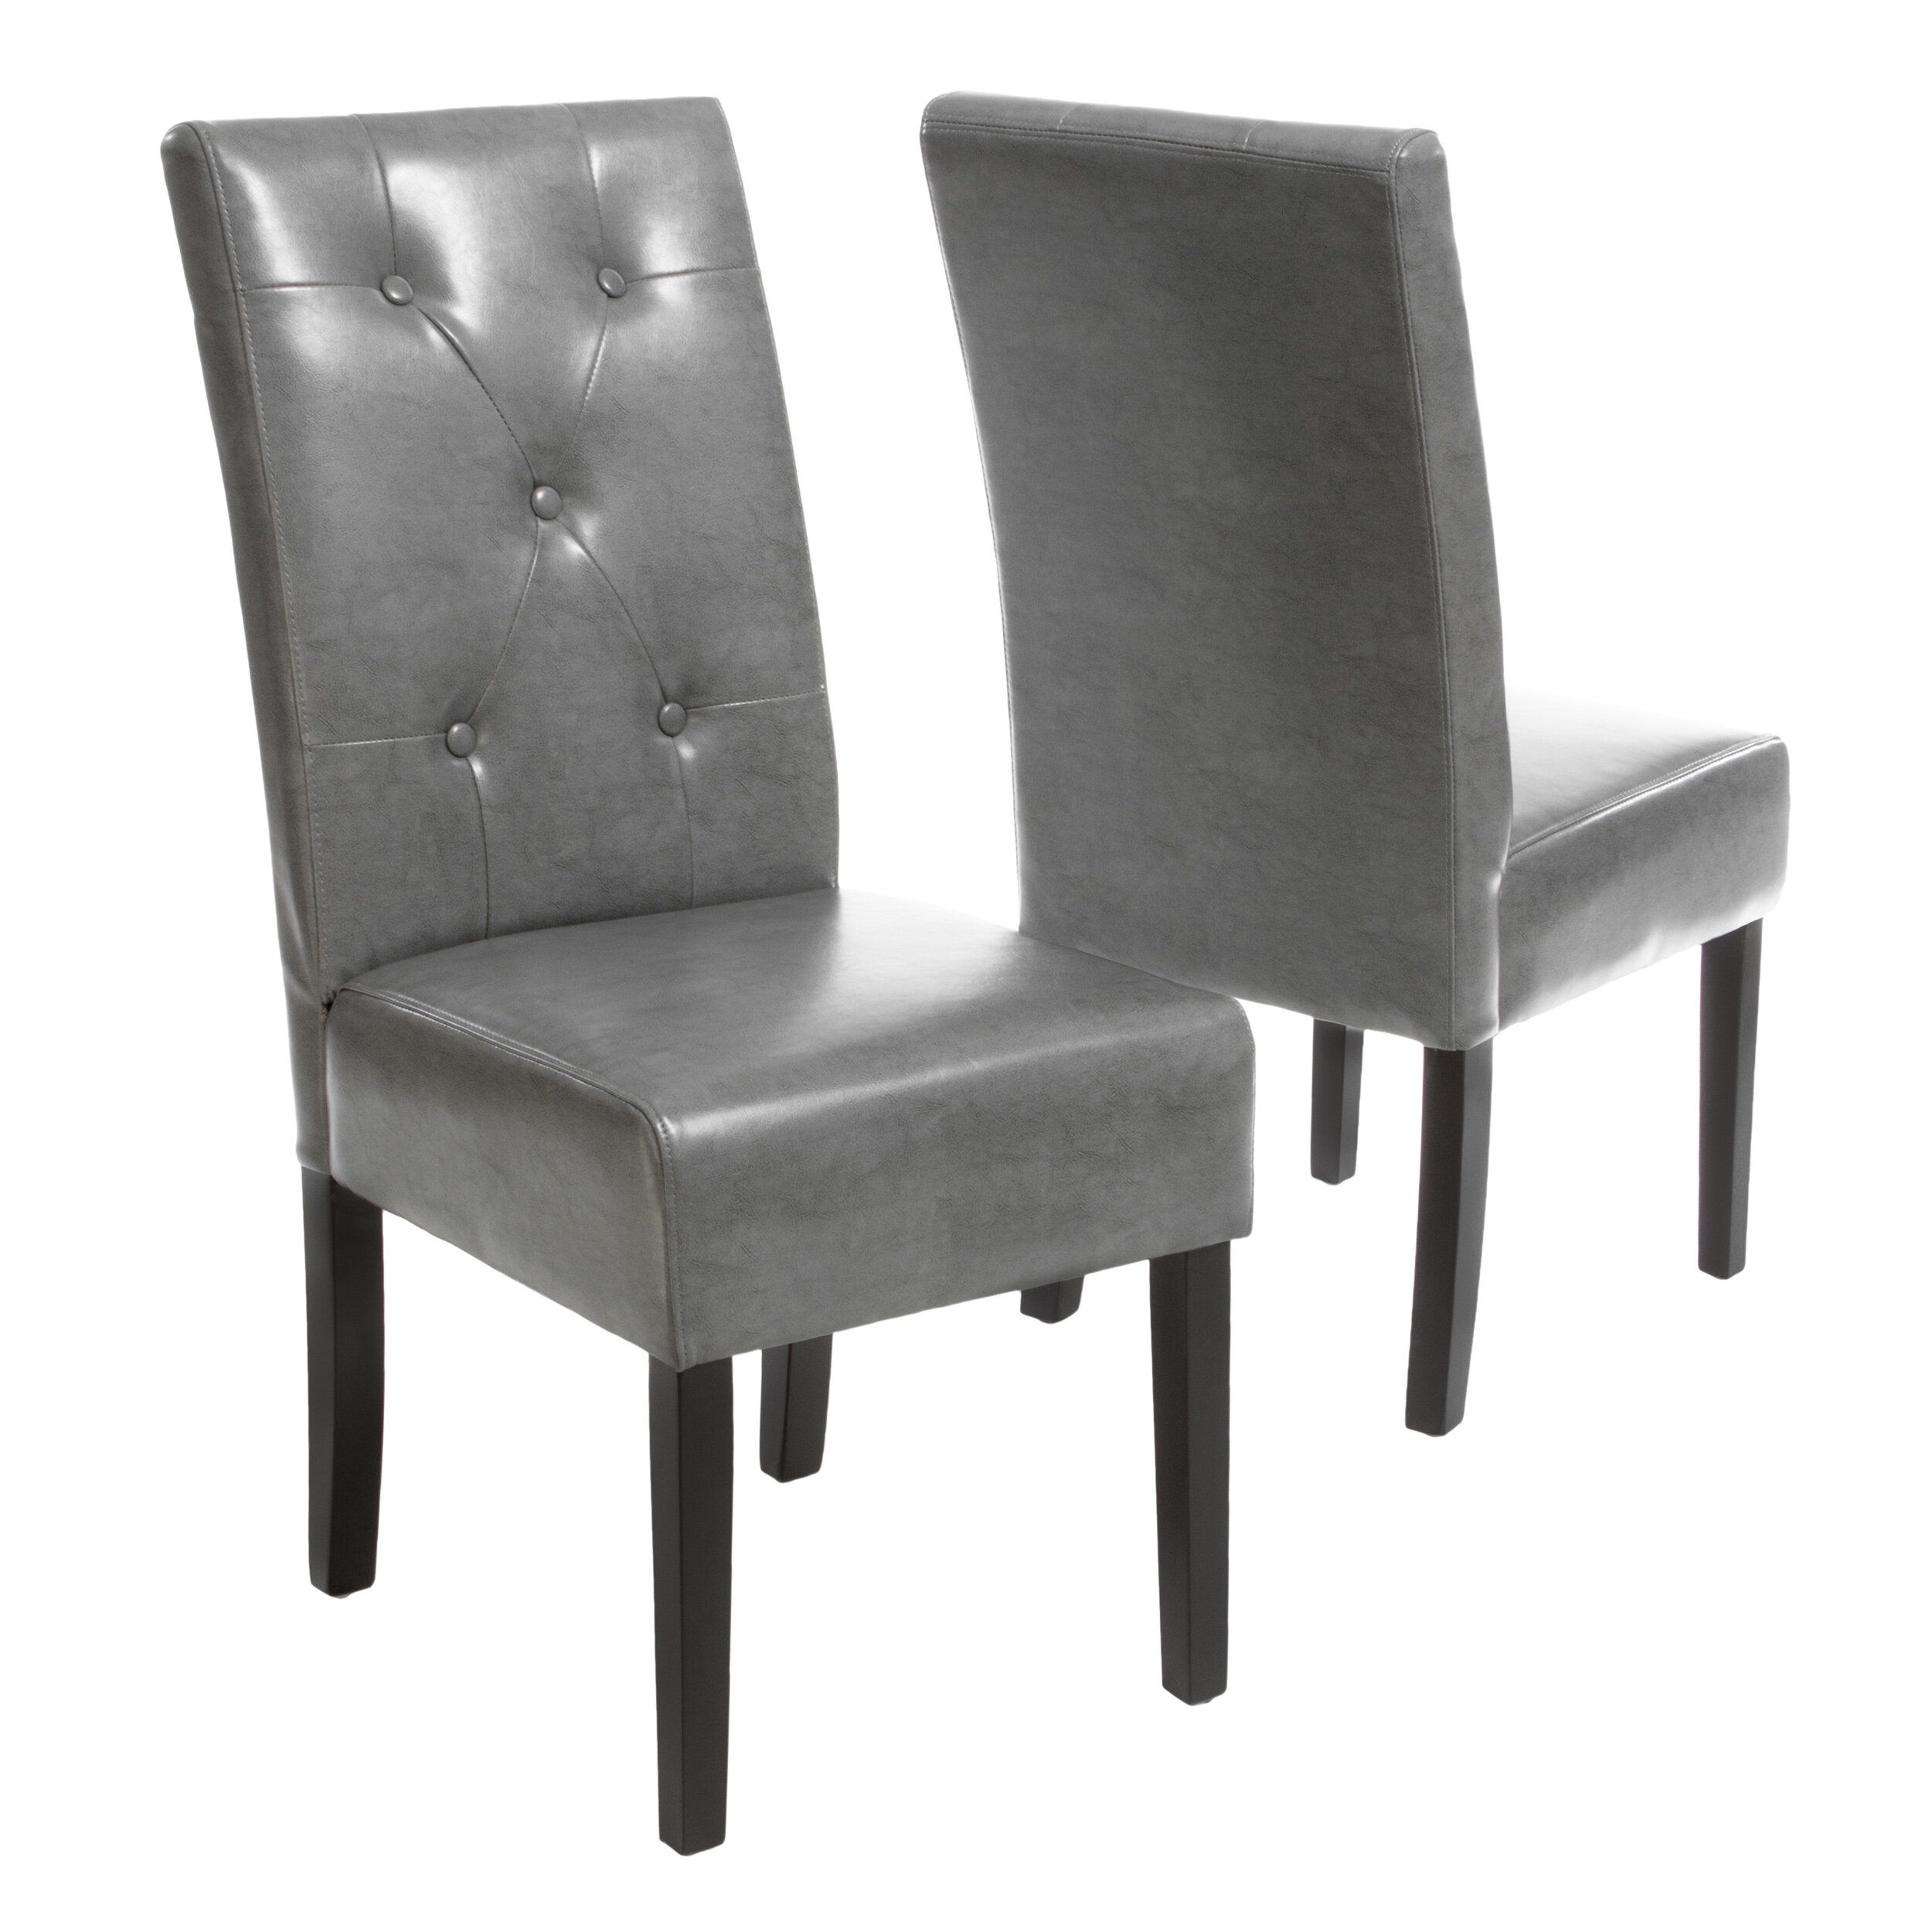 accent chairs for dining room clarity photographs | Latitude Run Corinne Upholstered Dining Chair & Reviews ...